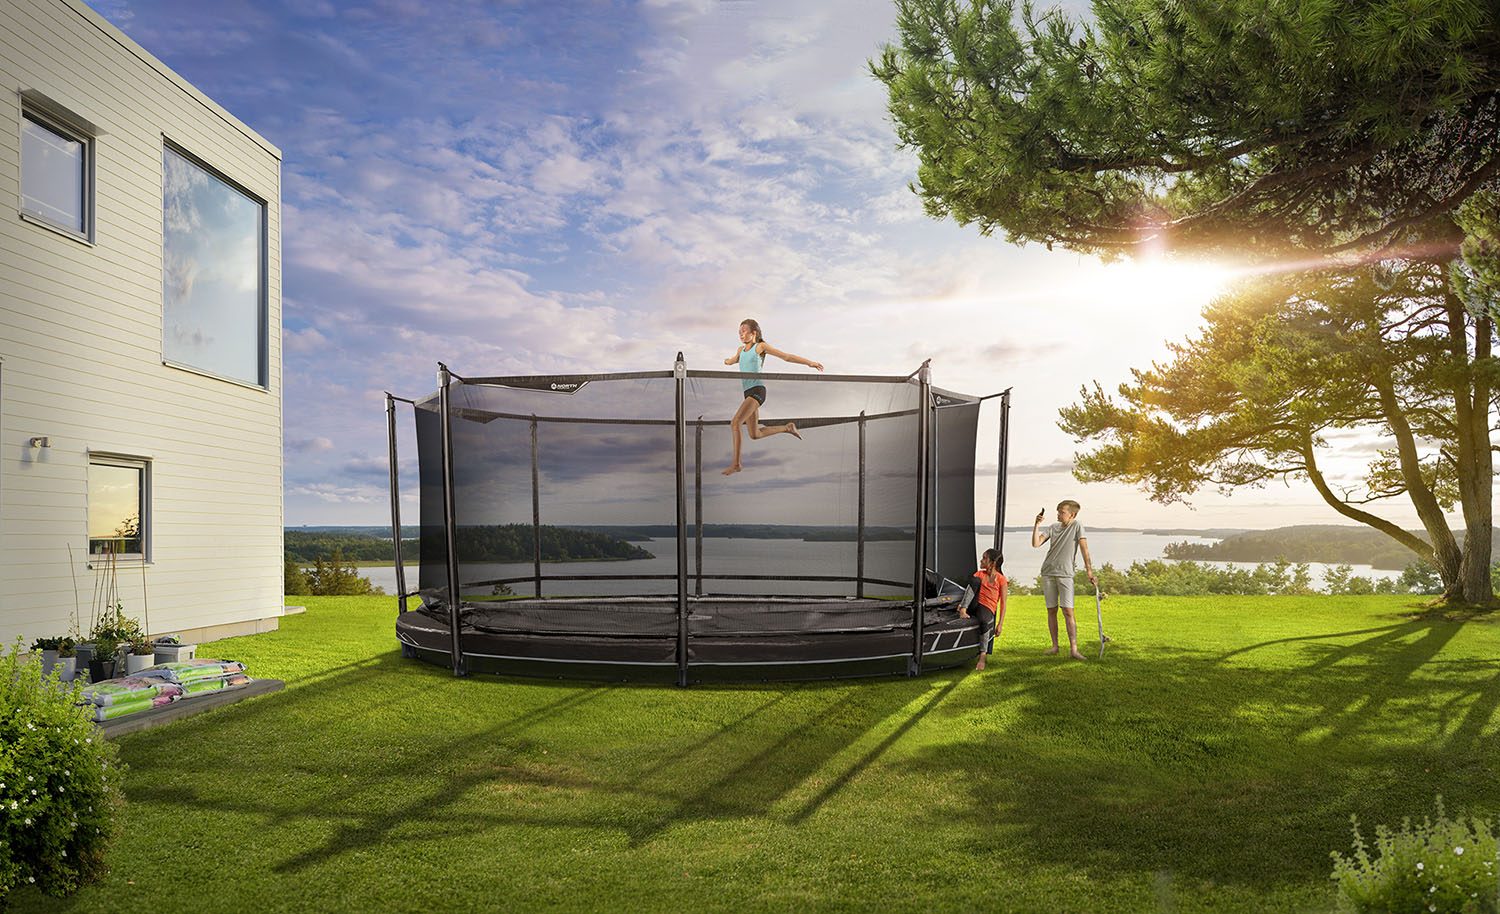 To Lower a Trampoline A discreet way to meet the needs of the whole family